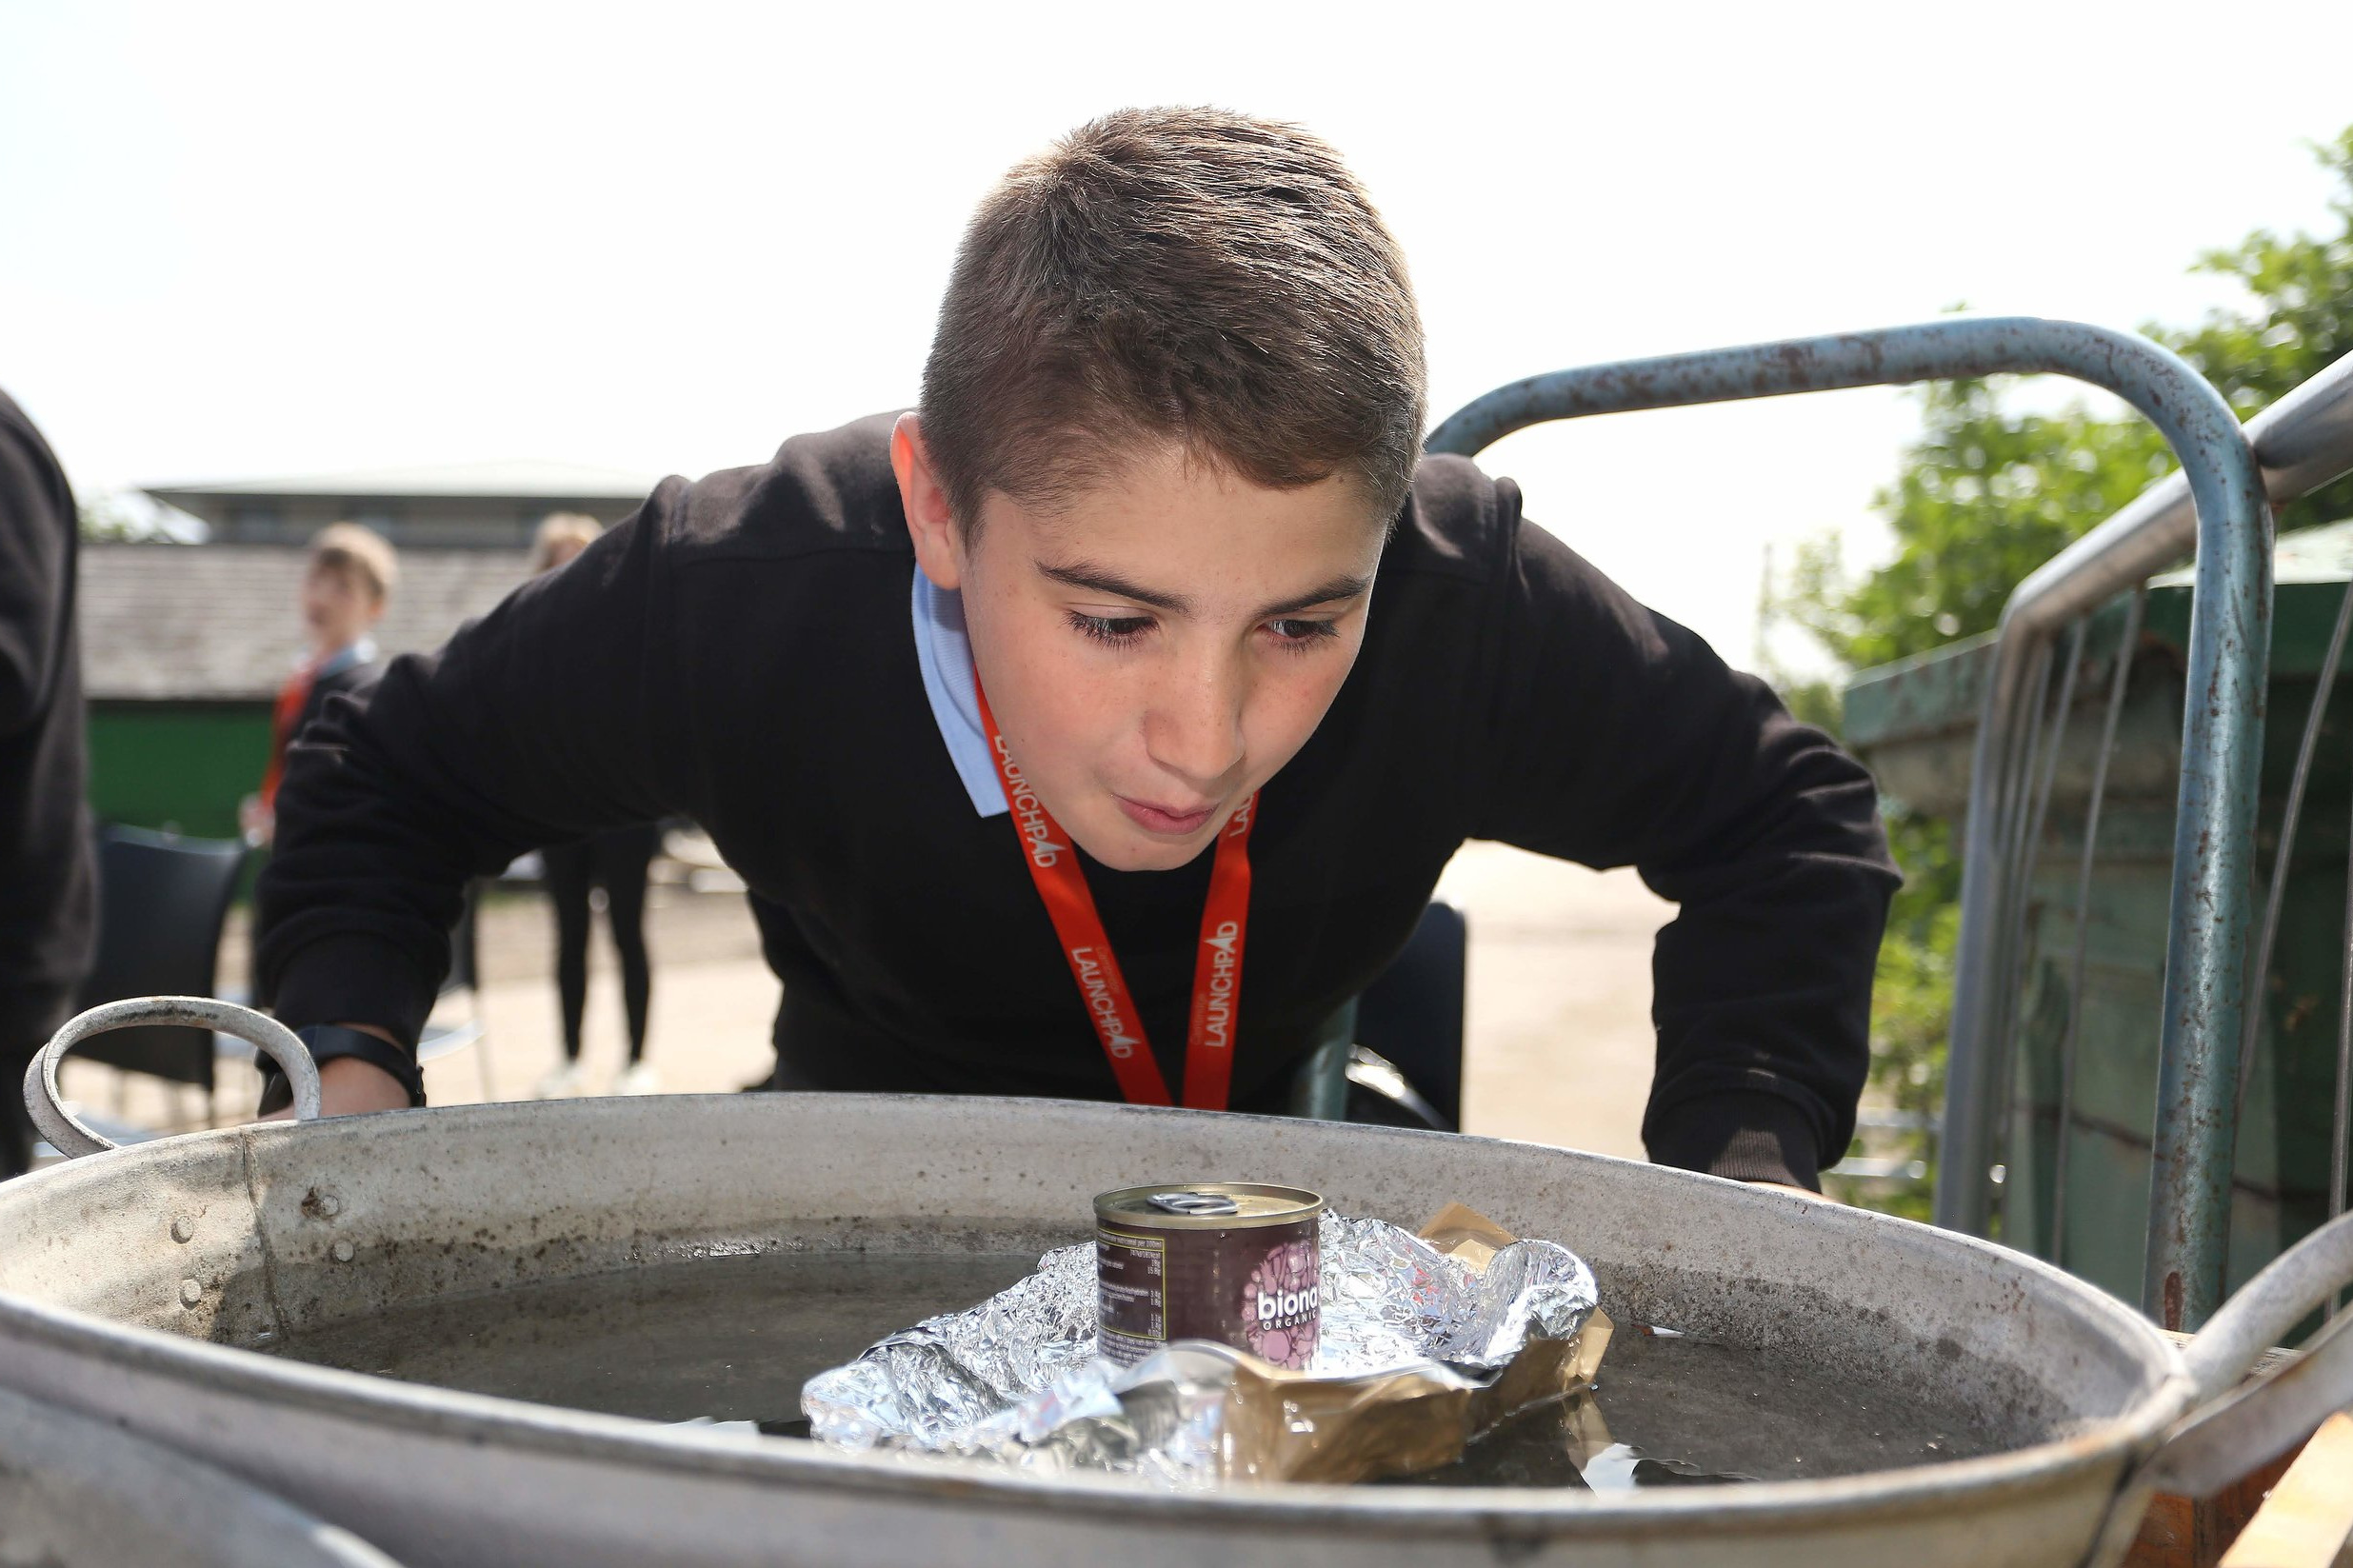 Moving in Water - Students are set a challenge of moving a small load across a small body of water using only a selected number of materials.Curriculum links: working scientifically, forces, properties of materials.